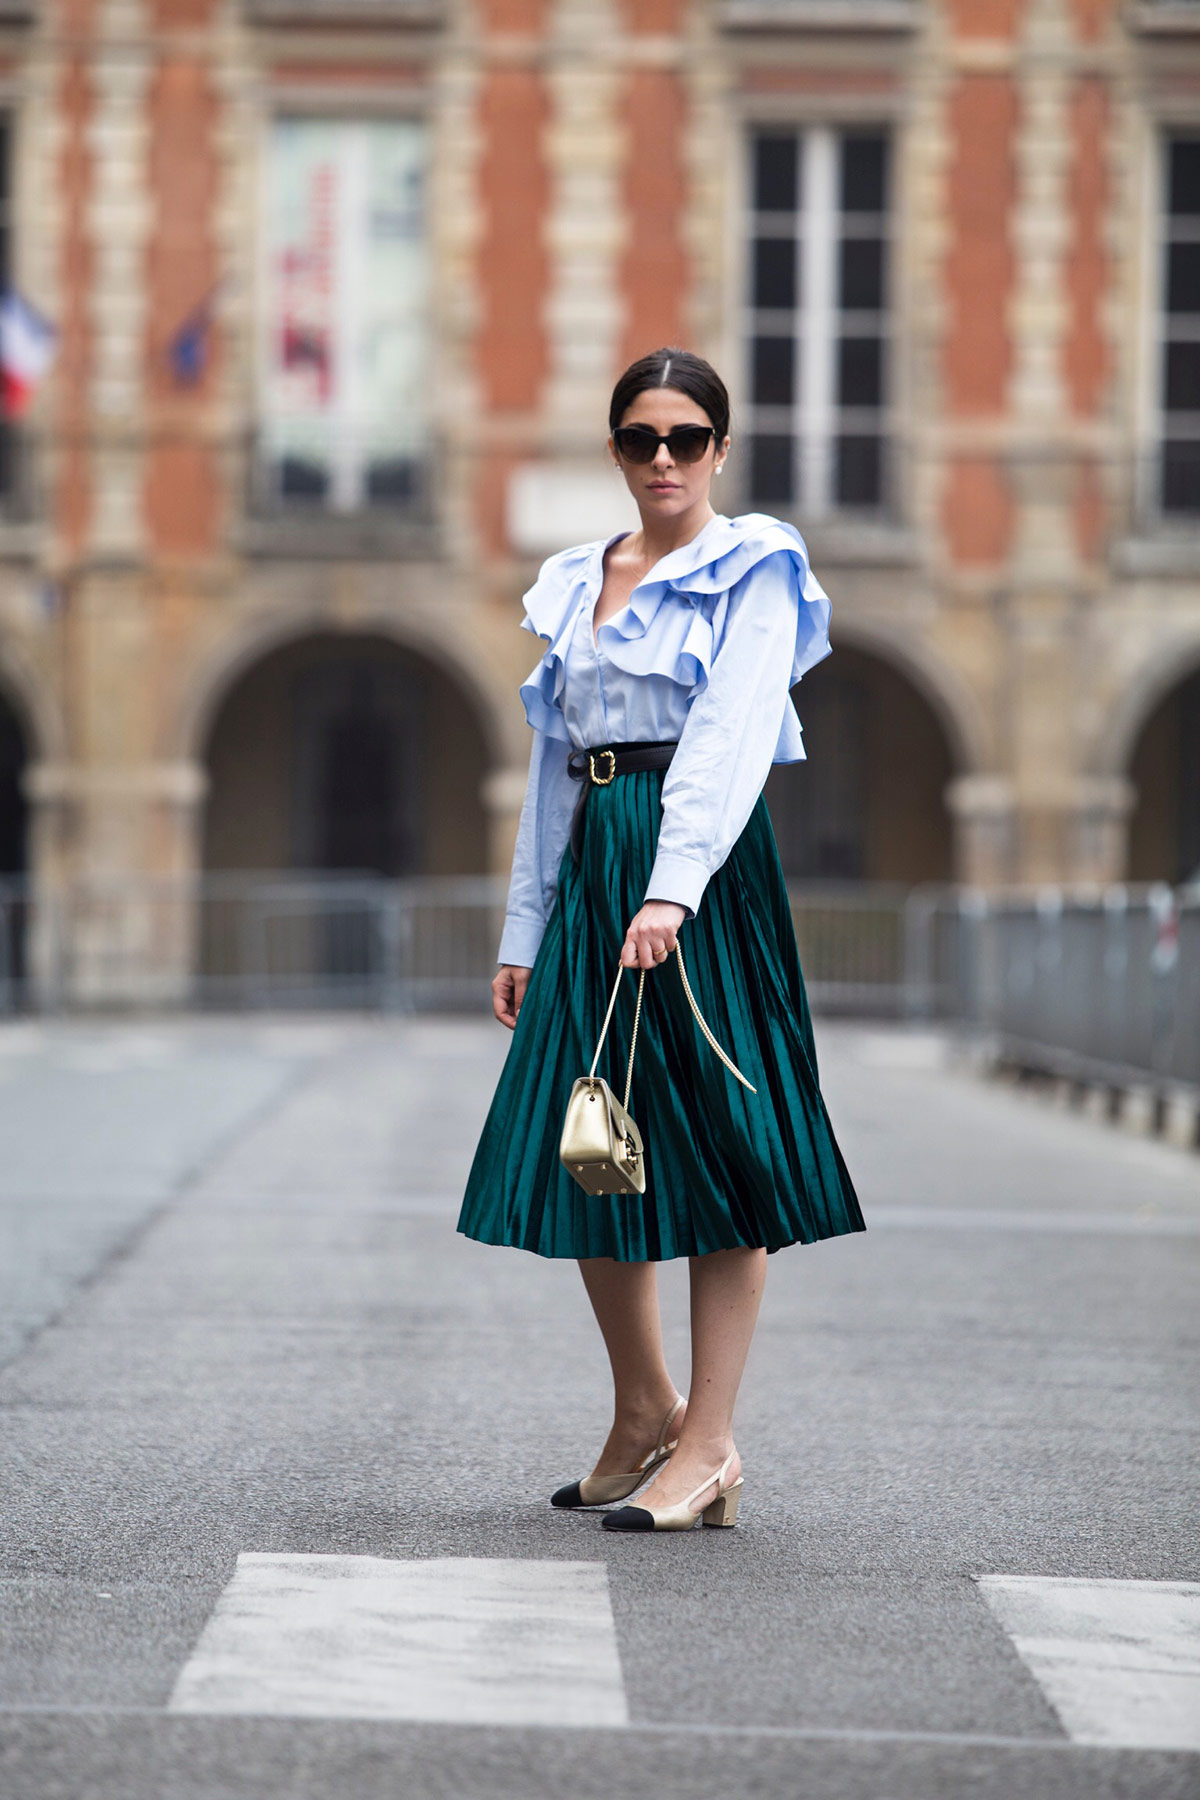 green pleated skirt and blue ruffled blouse by Stella Asteria - Fashion & Lifestyle Blogger